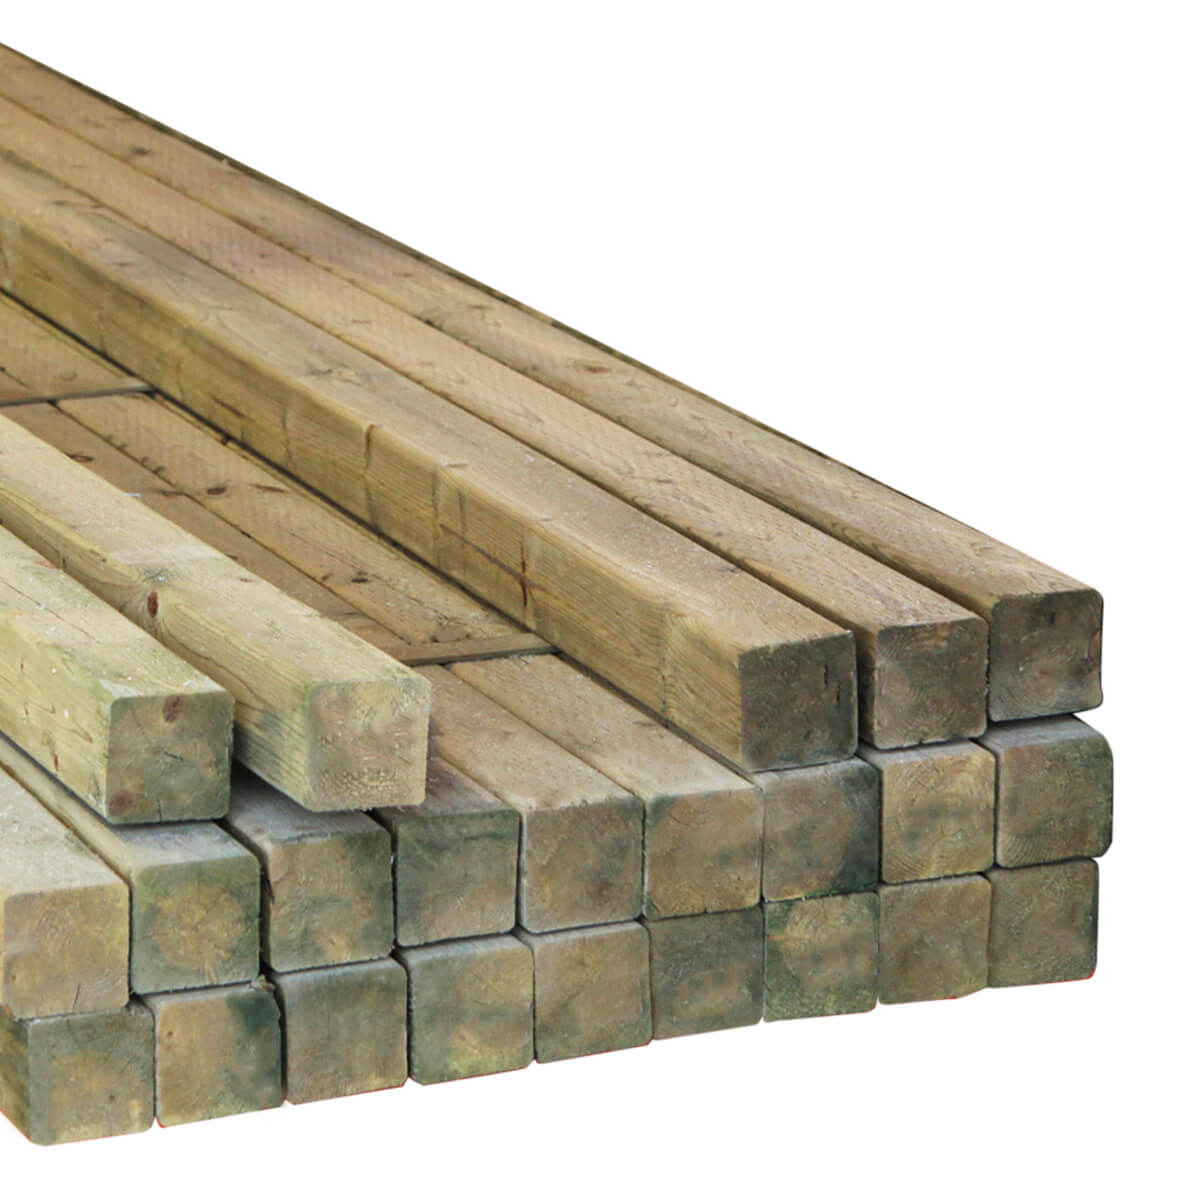 Rough CCA Treated Timbers - 6 x 6 x 20'